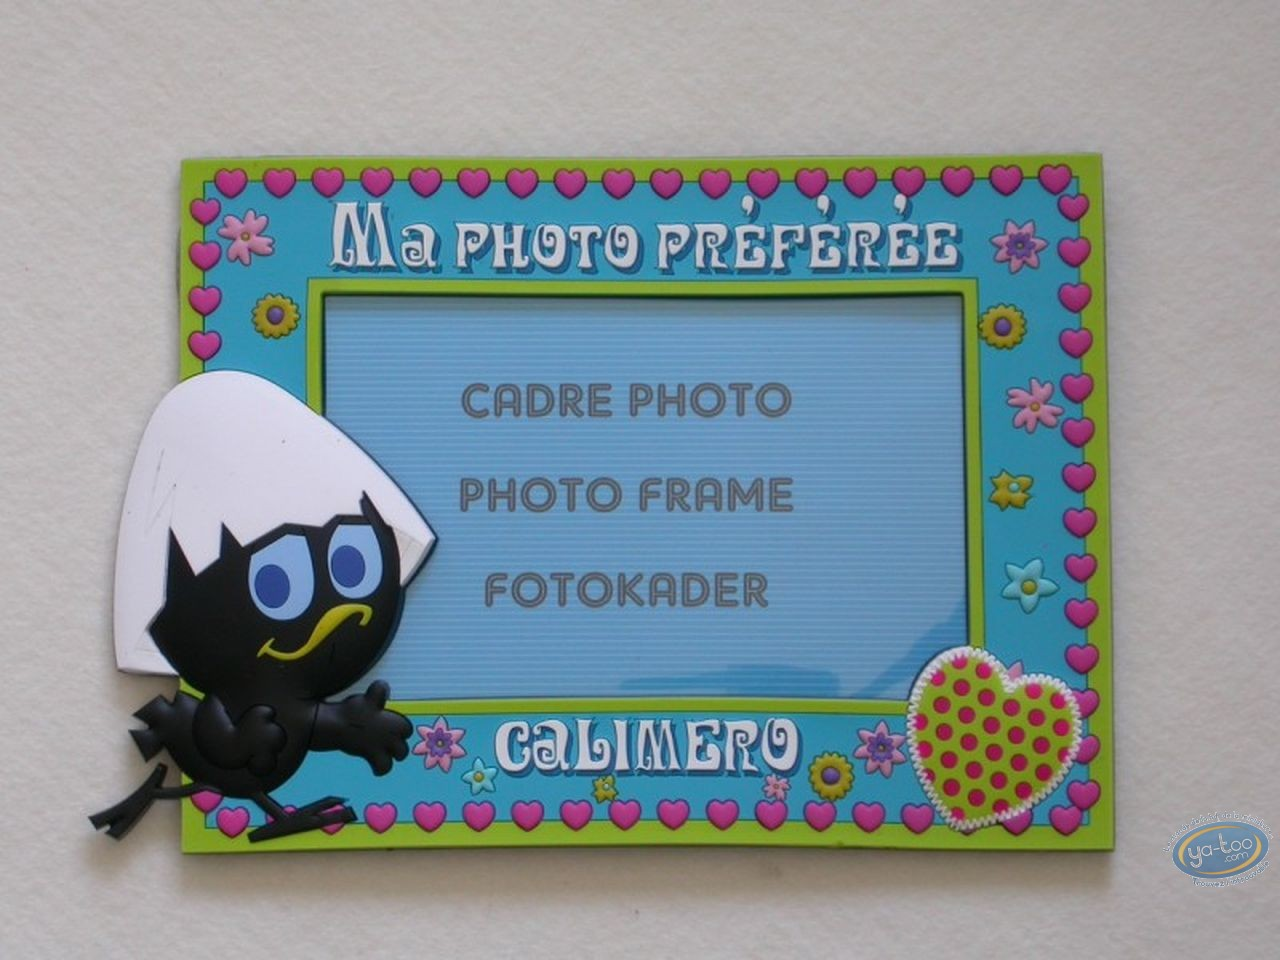 Photo Frame, Calimero : PhotoFrame, Caliméro : Ma phtot préférée